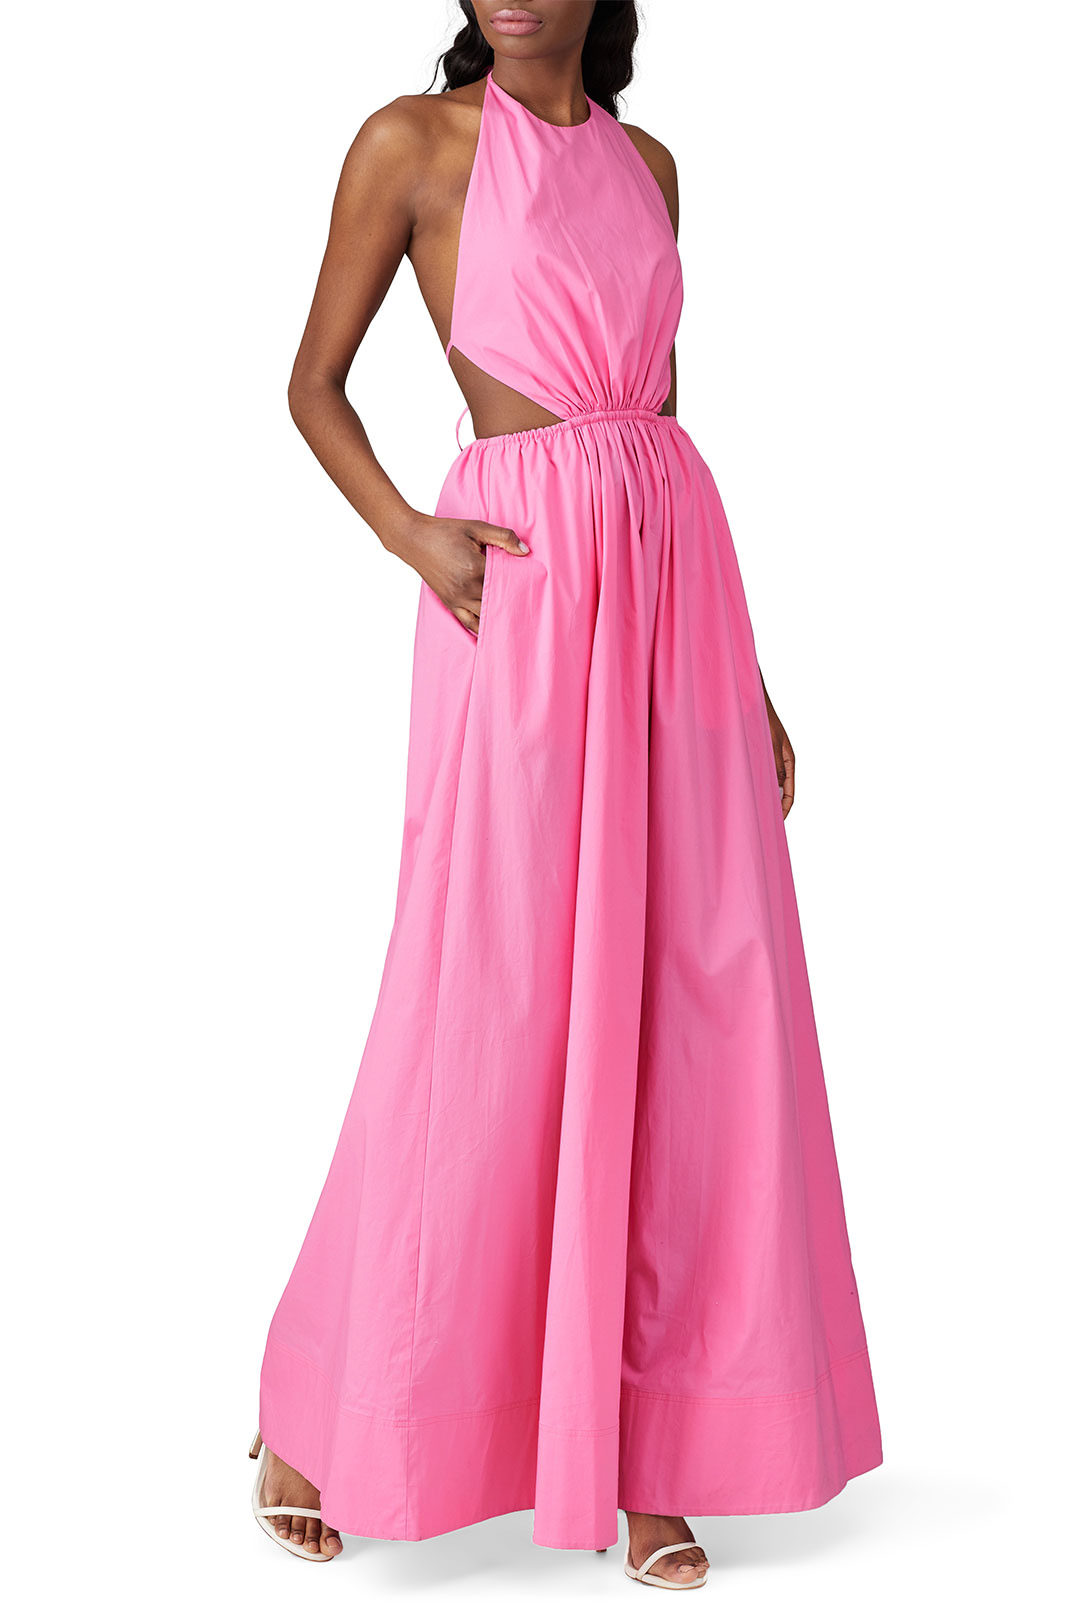 rent the runway pink maxi dress for a spring wedding